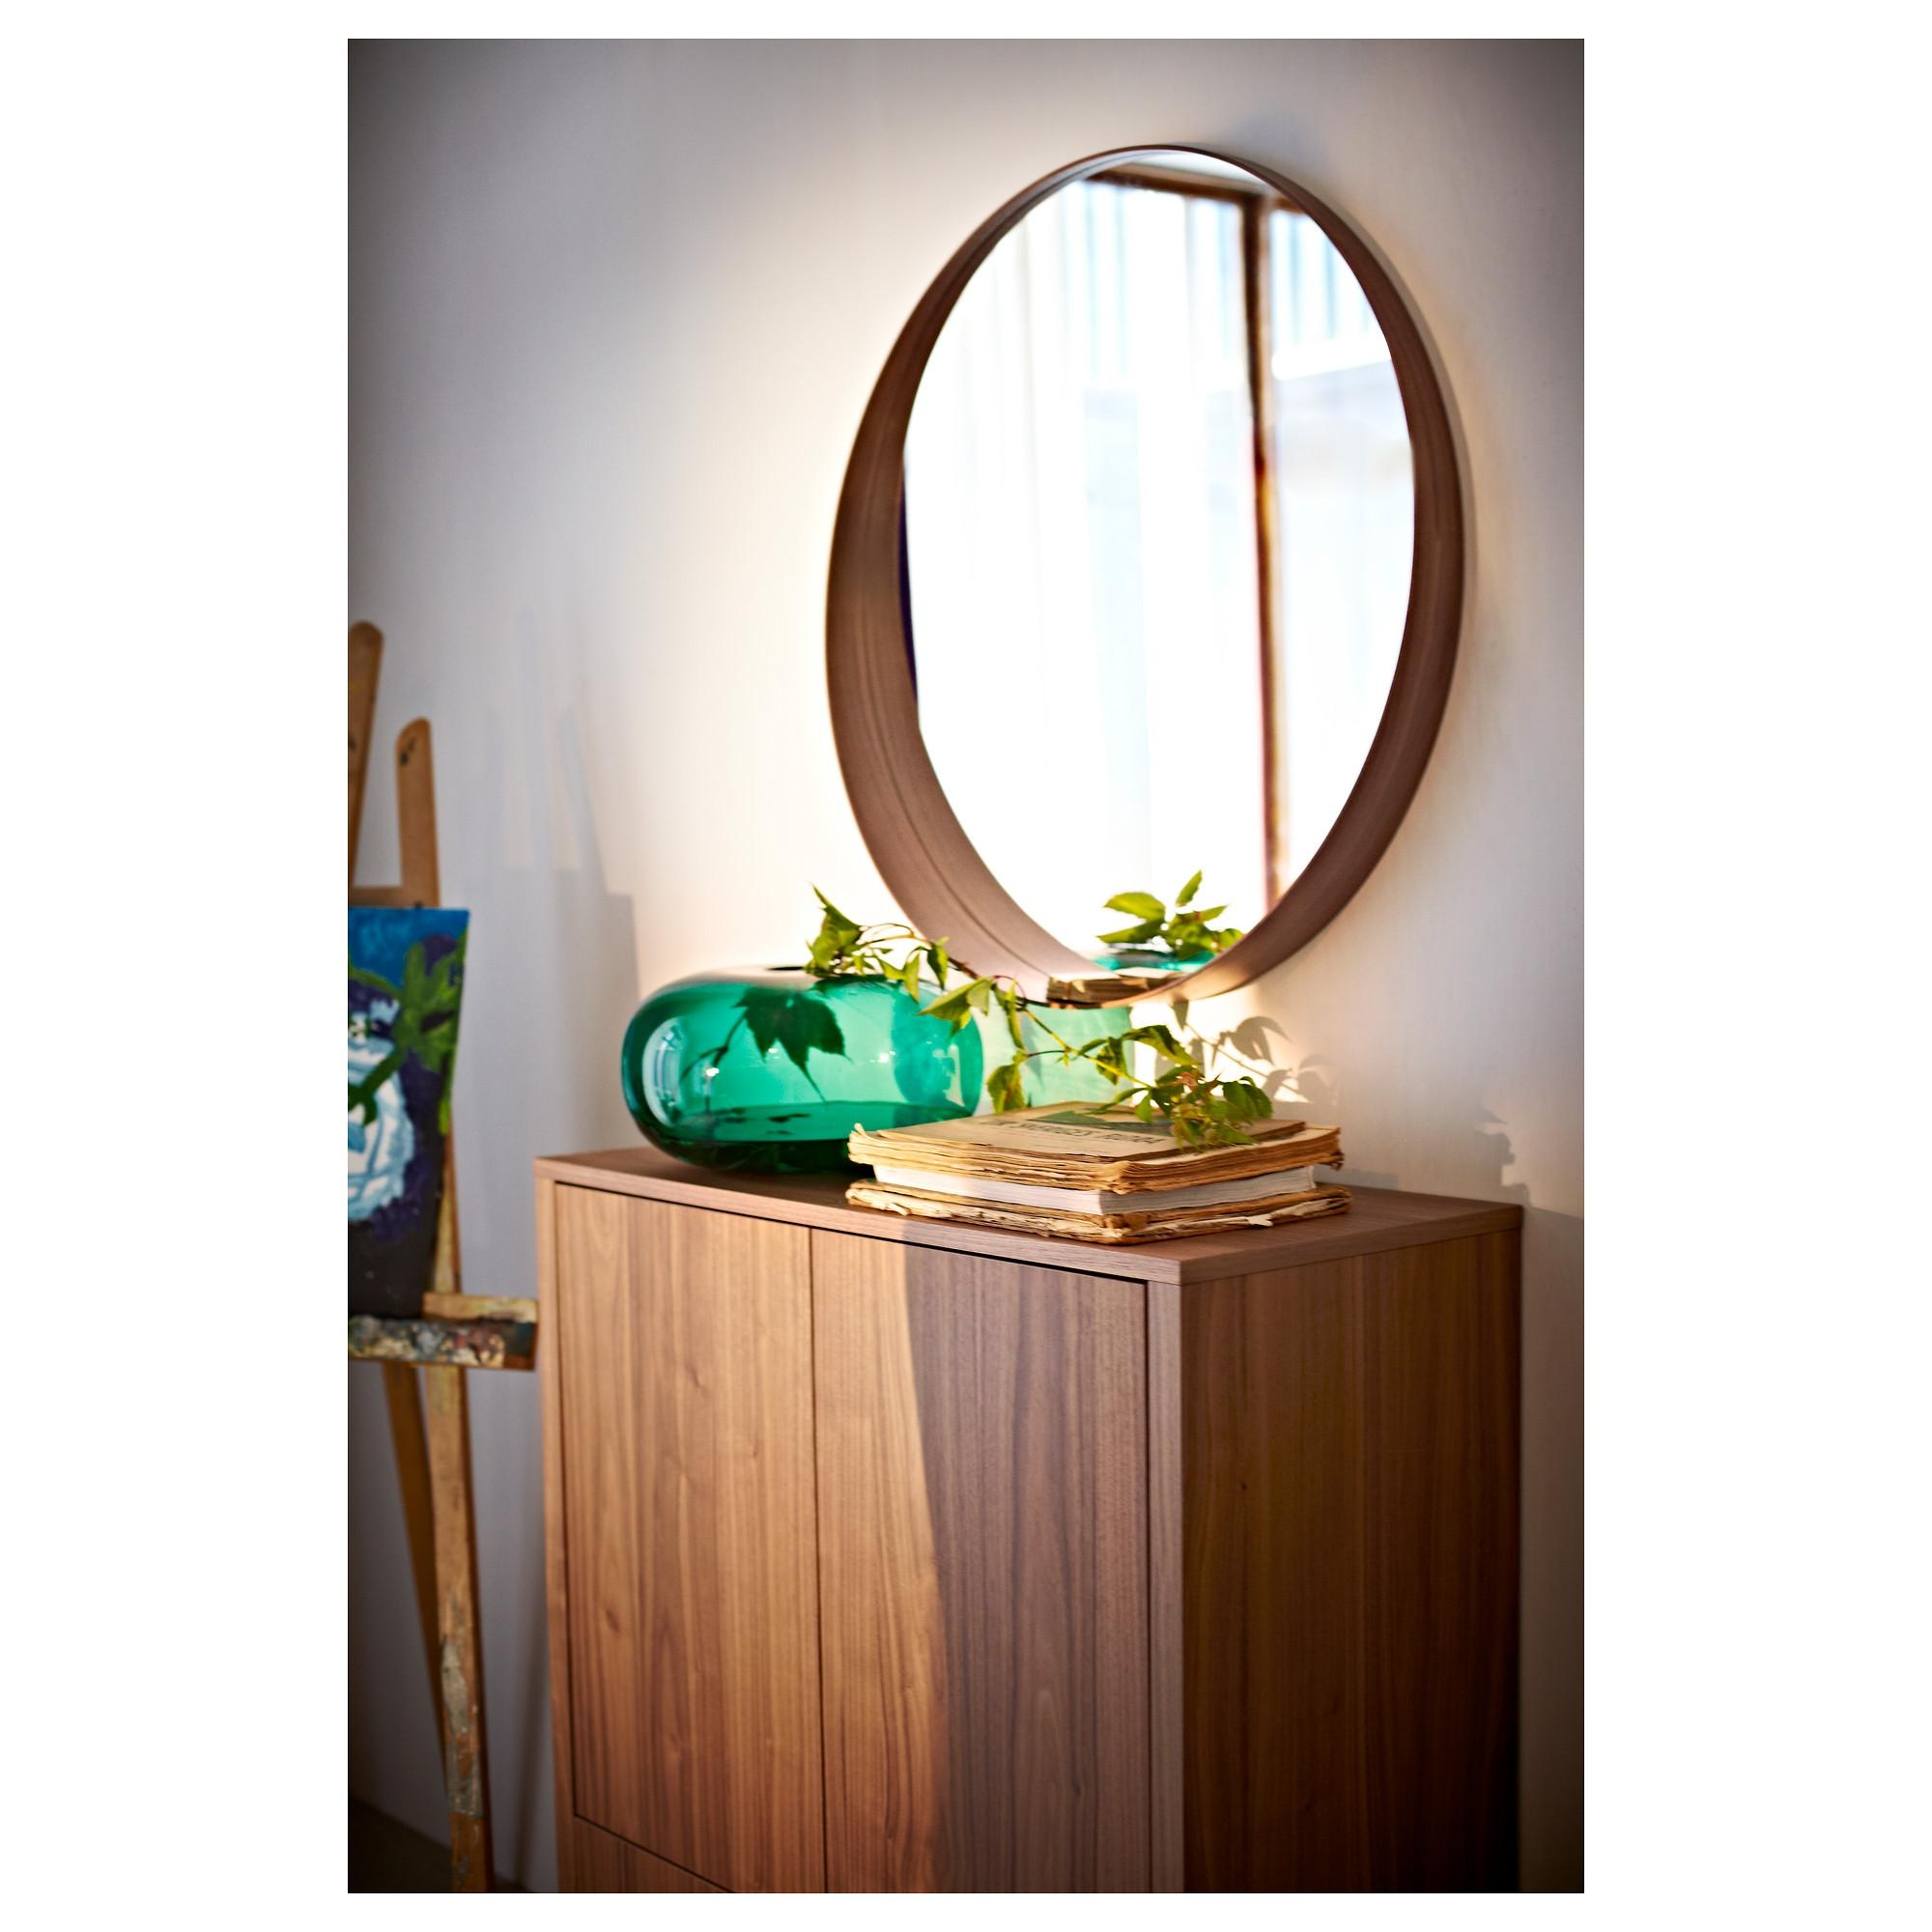 Stockholm Mirror Walnut Veneer 80 Cm – Ikea Throughout Hallway Safety Mirrors (Image 16 of 20)